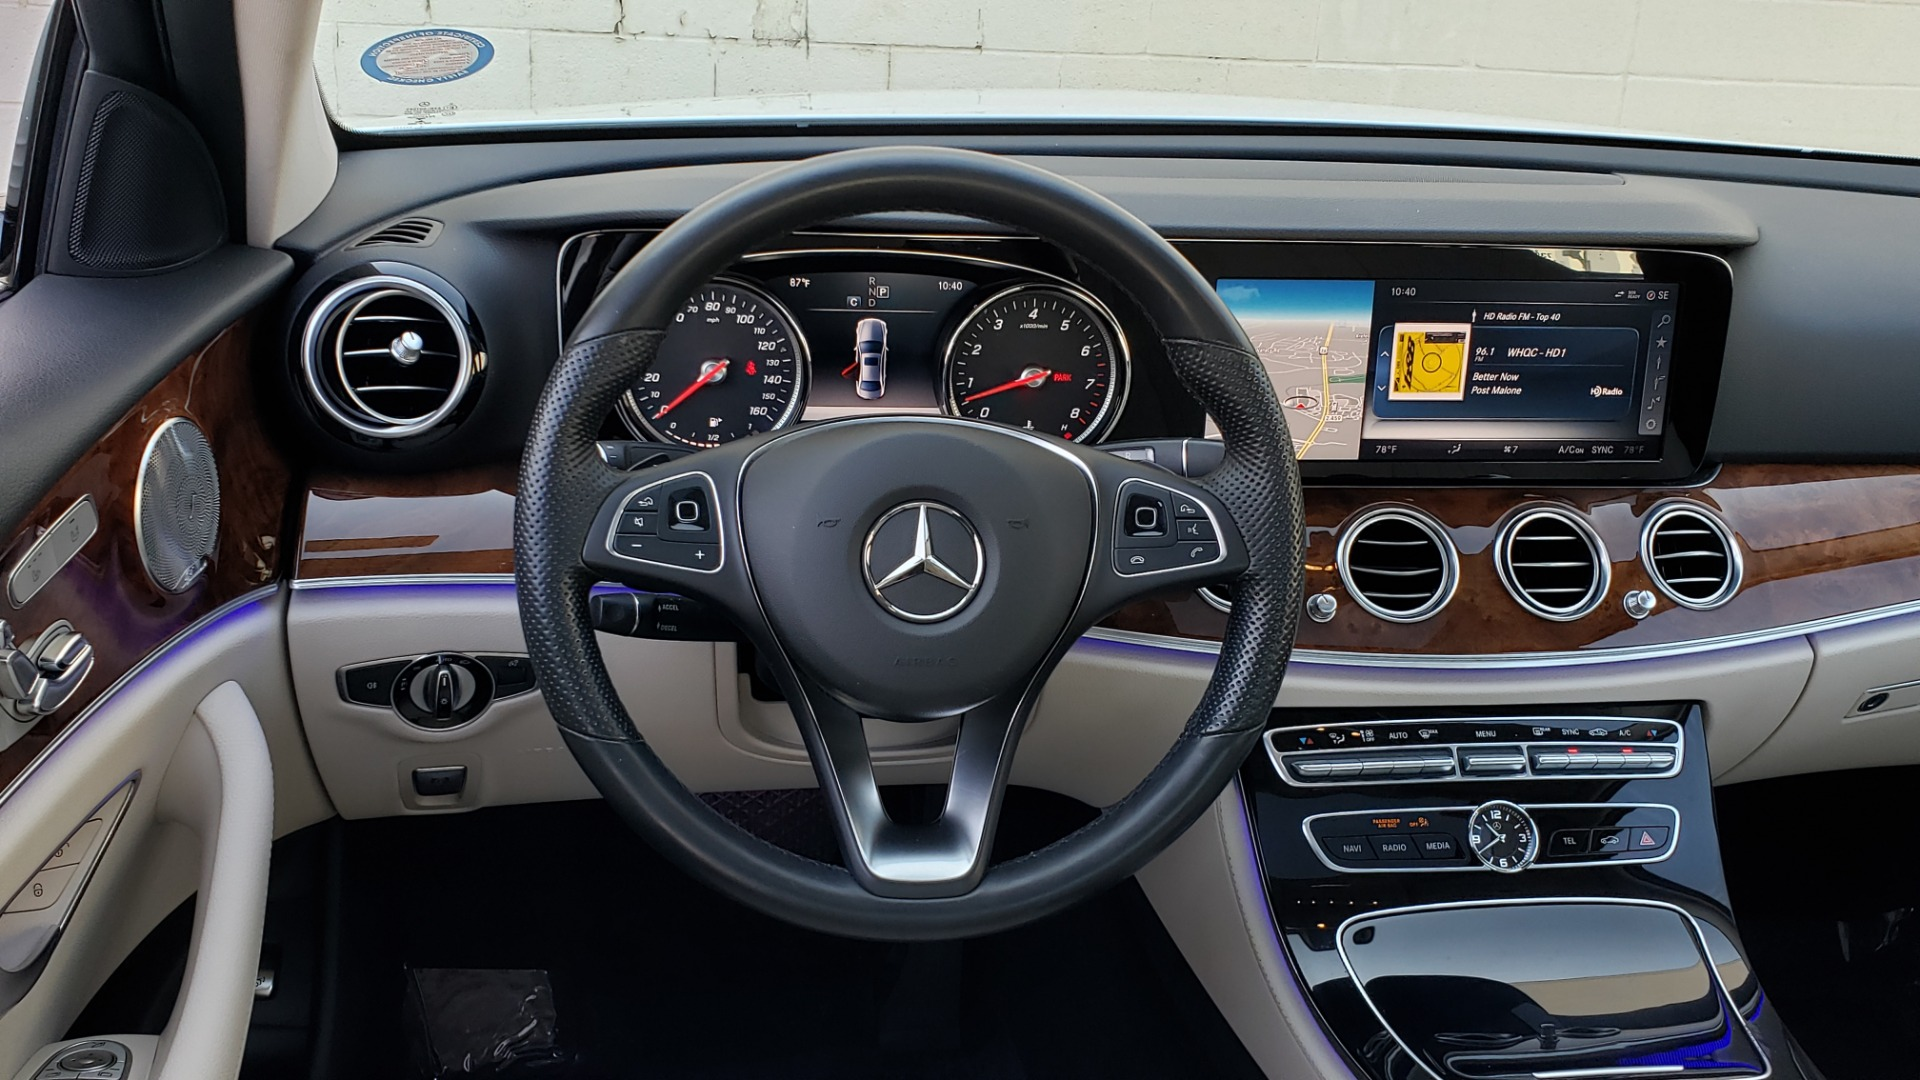 Used 2017 Mercedes-Benz E-Class E 300 PREMIUM / RWD / NAV / SNF / PARKING PILOT / REARVIEW / BURMESTER for sale Sold at Formula Imports in Charlotte NC 28227 33